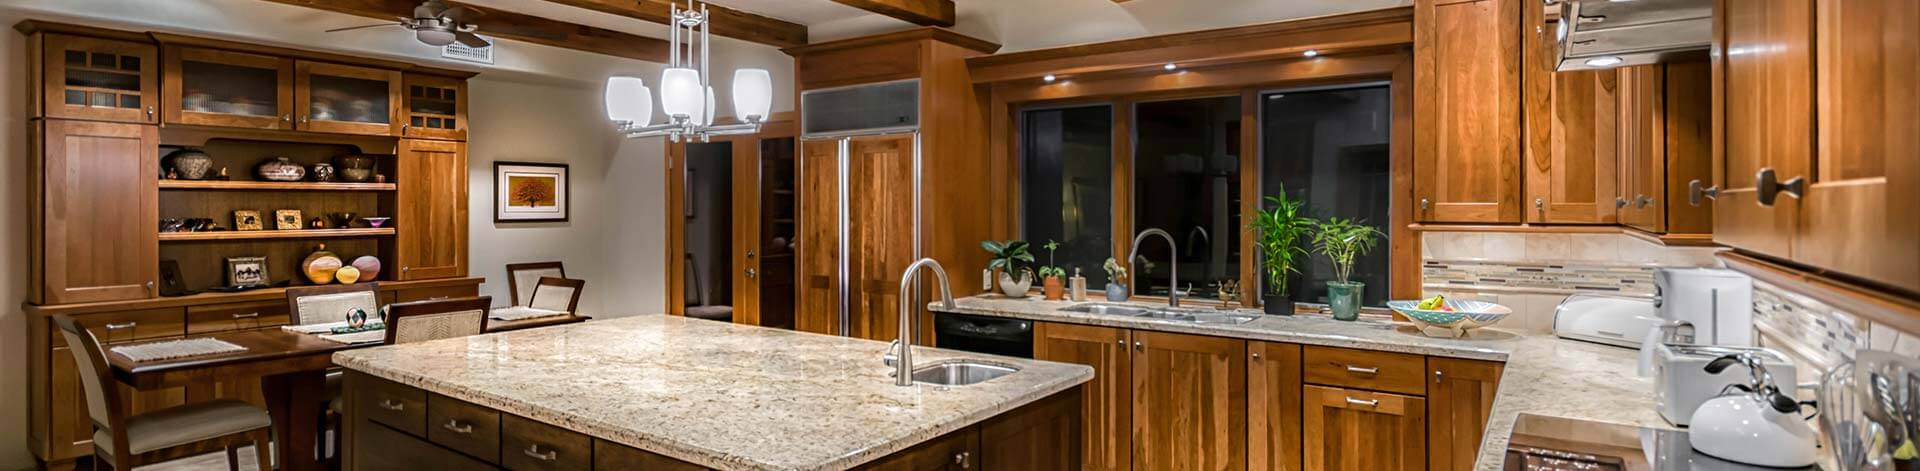 Finalizing The Contract With A Kitchen Remodeling Company